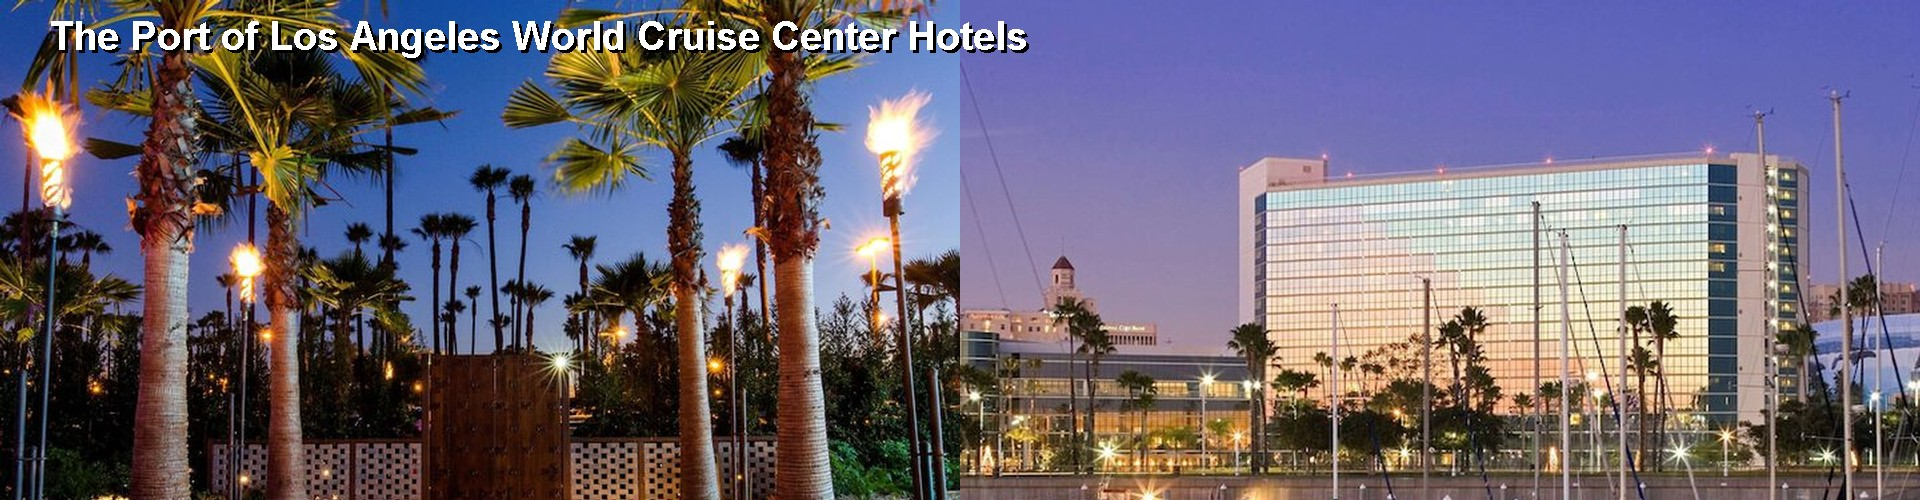 5 Best Hotels near The Port of Los Angeles World Cruise Center